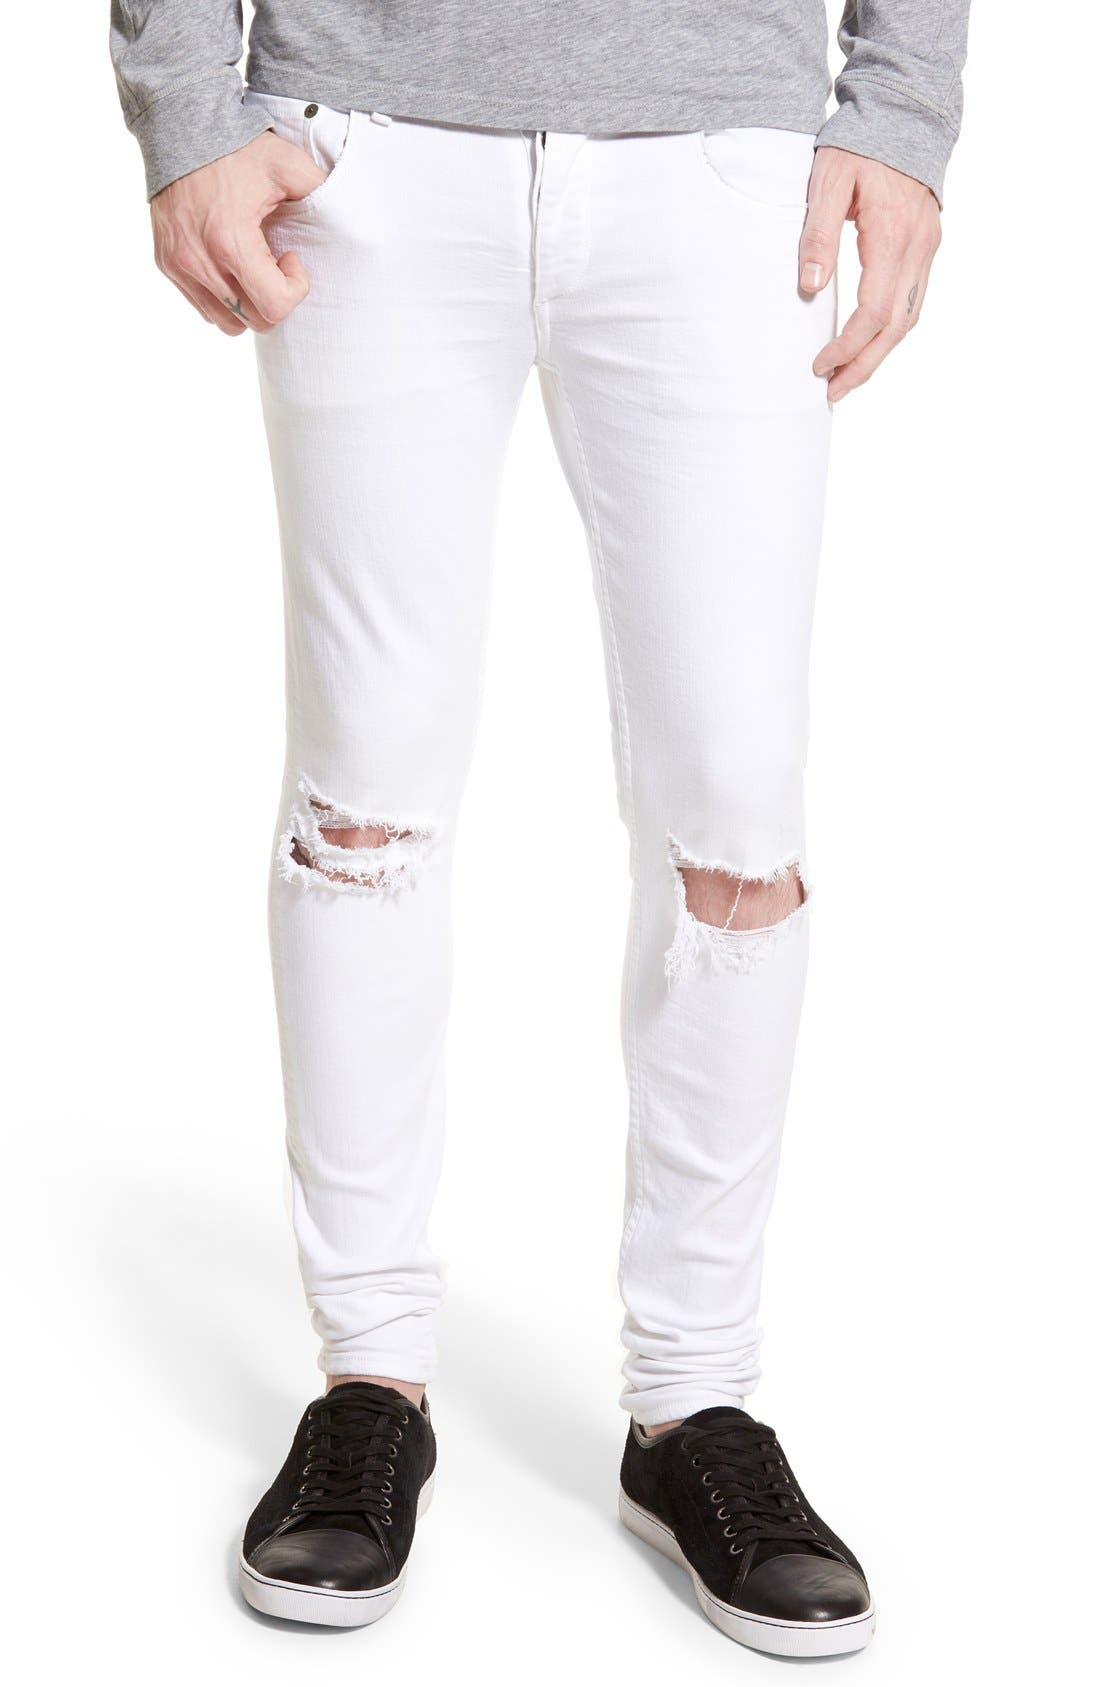 Main Image - rag & bone Standard Issue Fit 1 Skinny Fit Jeans (Aged White)